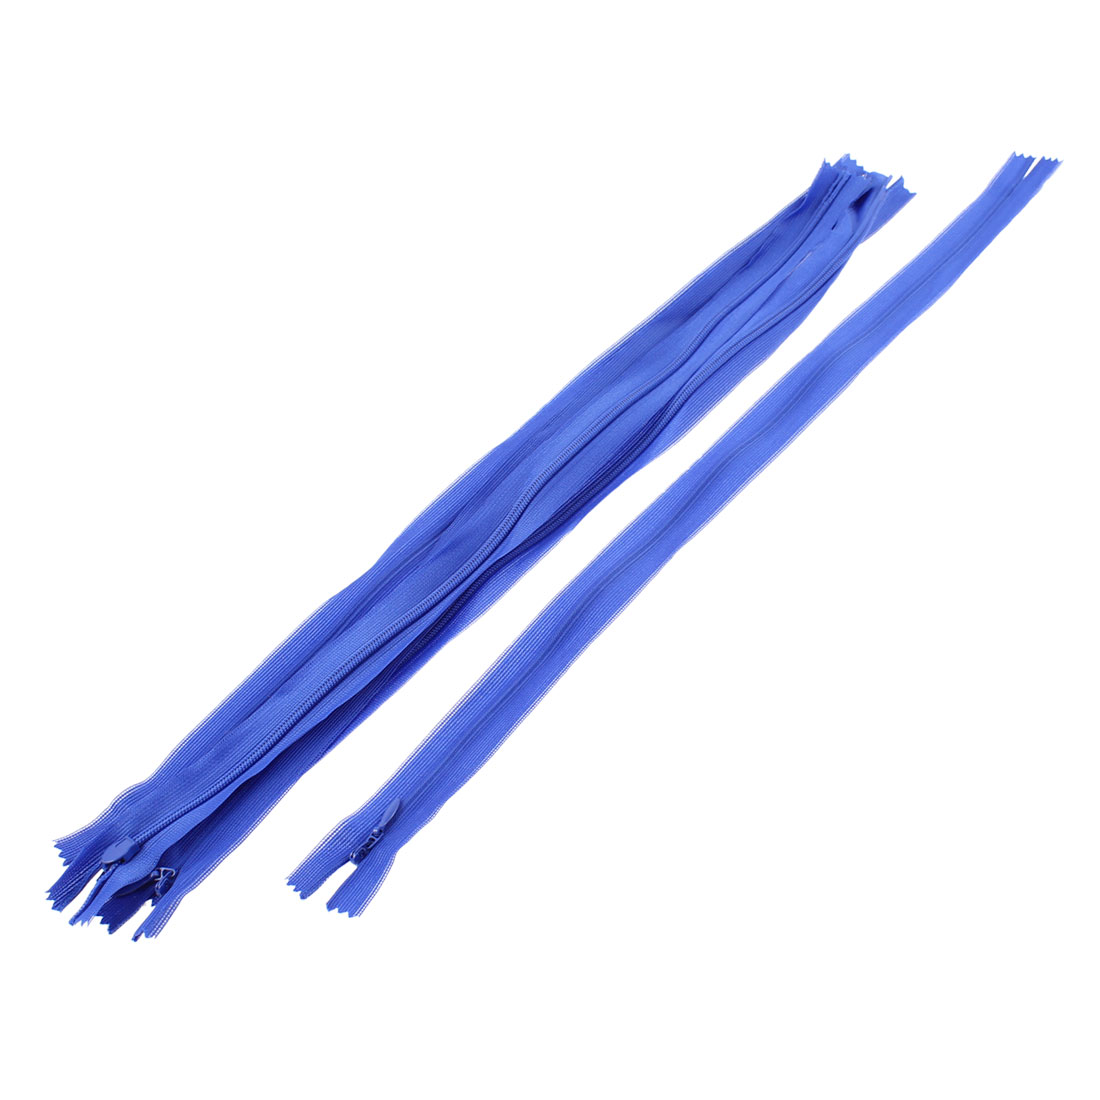 Dress Pants Closed End Nylon Zippers Tailor Sewing Craft Tool Blue 40cm 5 Pcs